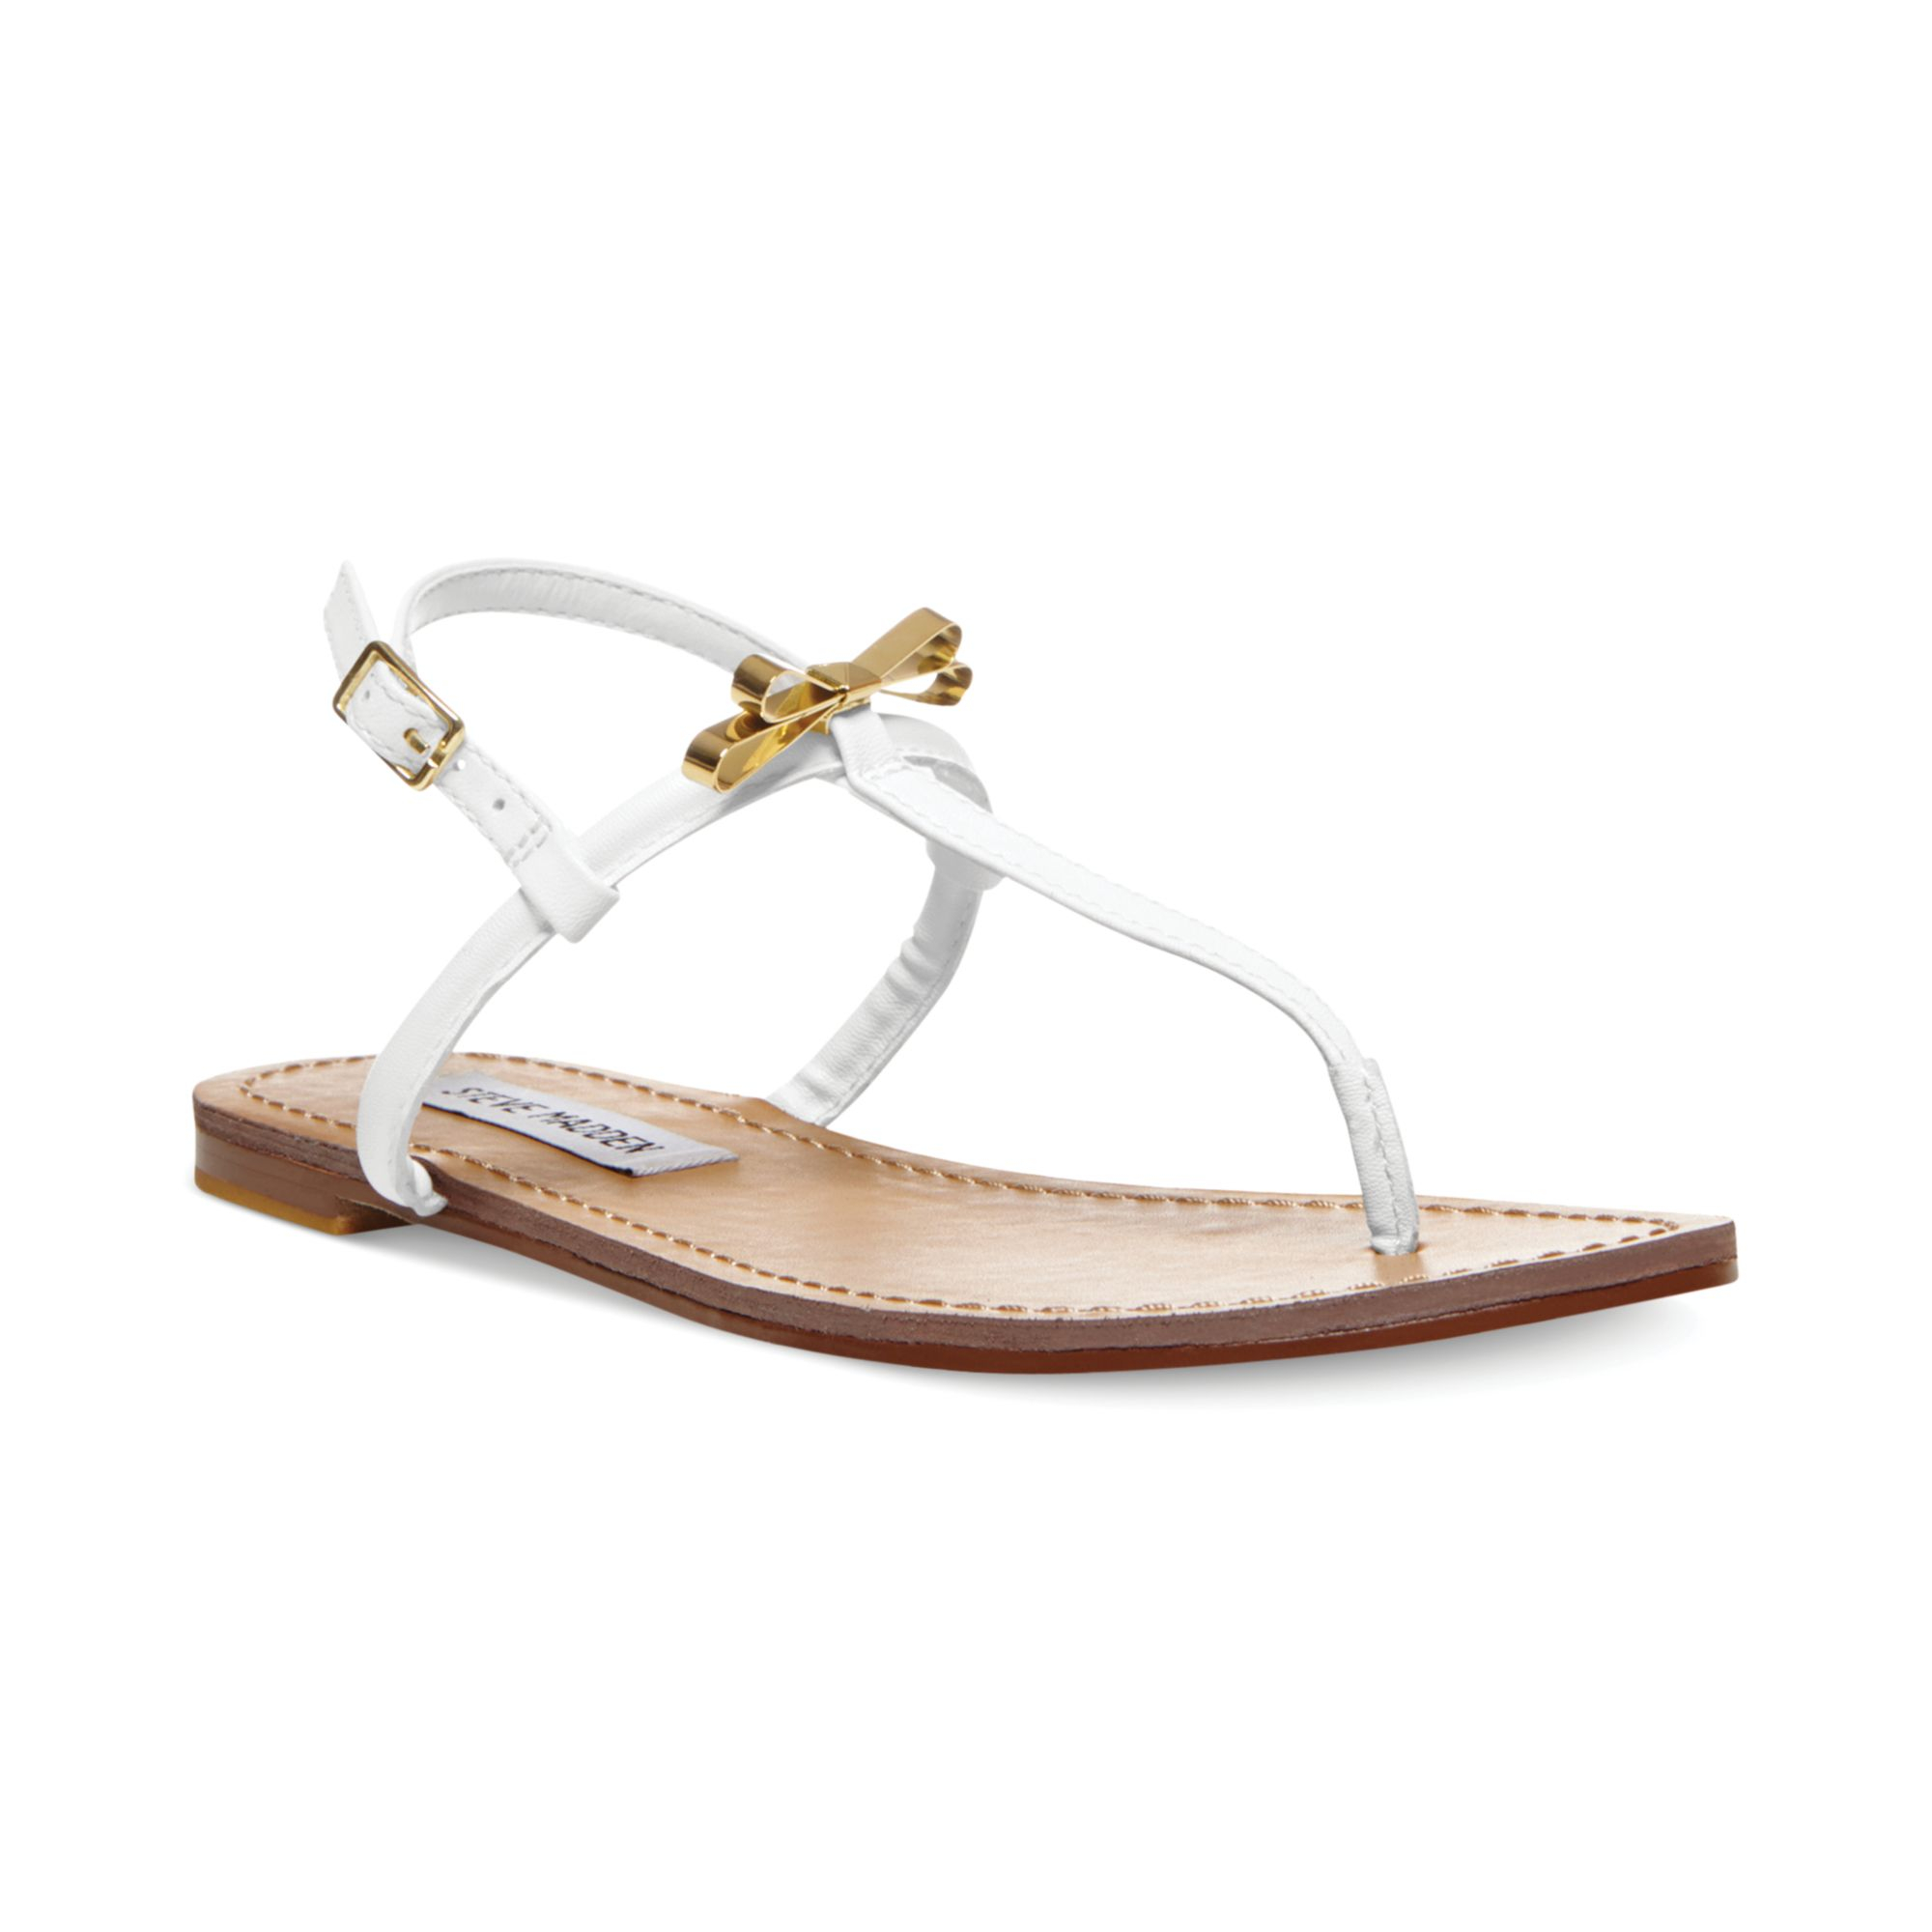 747c3a83bc0af Lyst - Steve Madden Womens Daisey Flat Thong Sandals in White